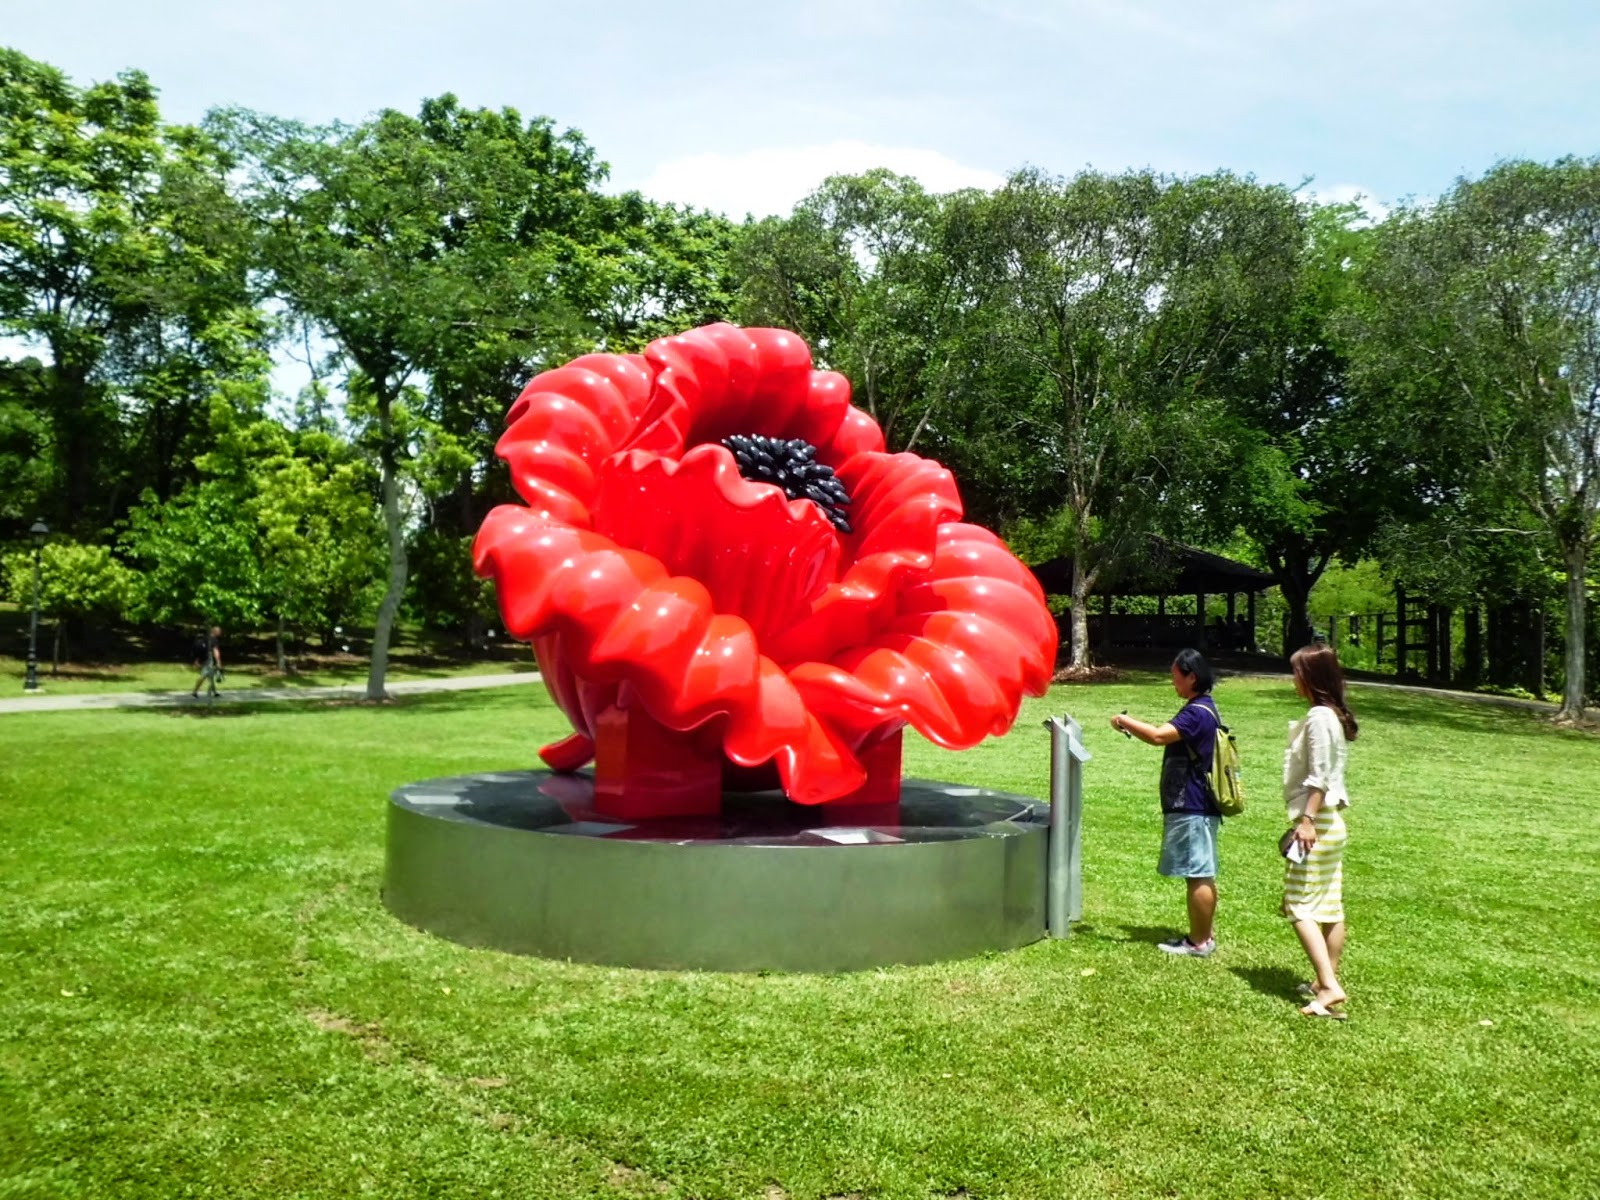 Singapore Botanic Gardens - Love and Peace Sculpture Campaign (05 May 2014 - 30 April 2015)